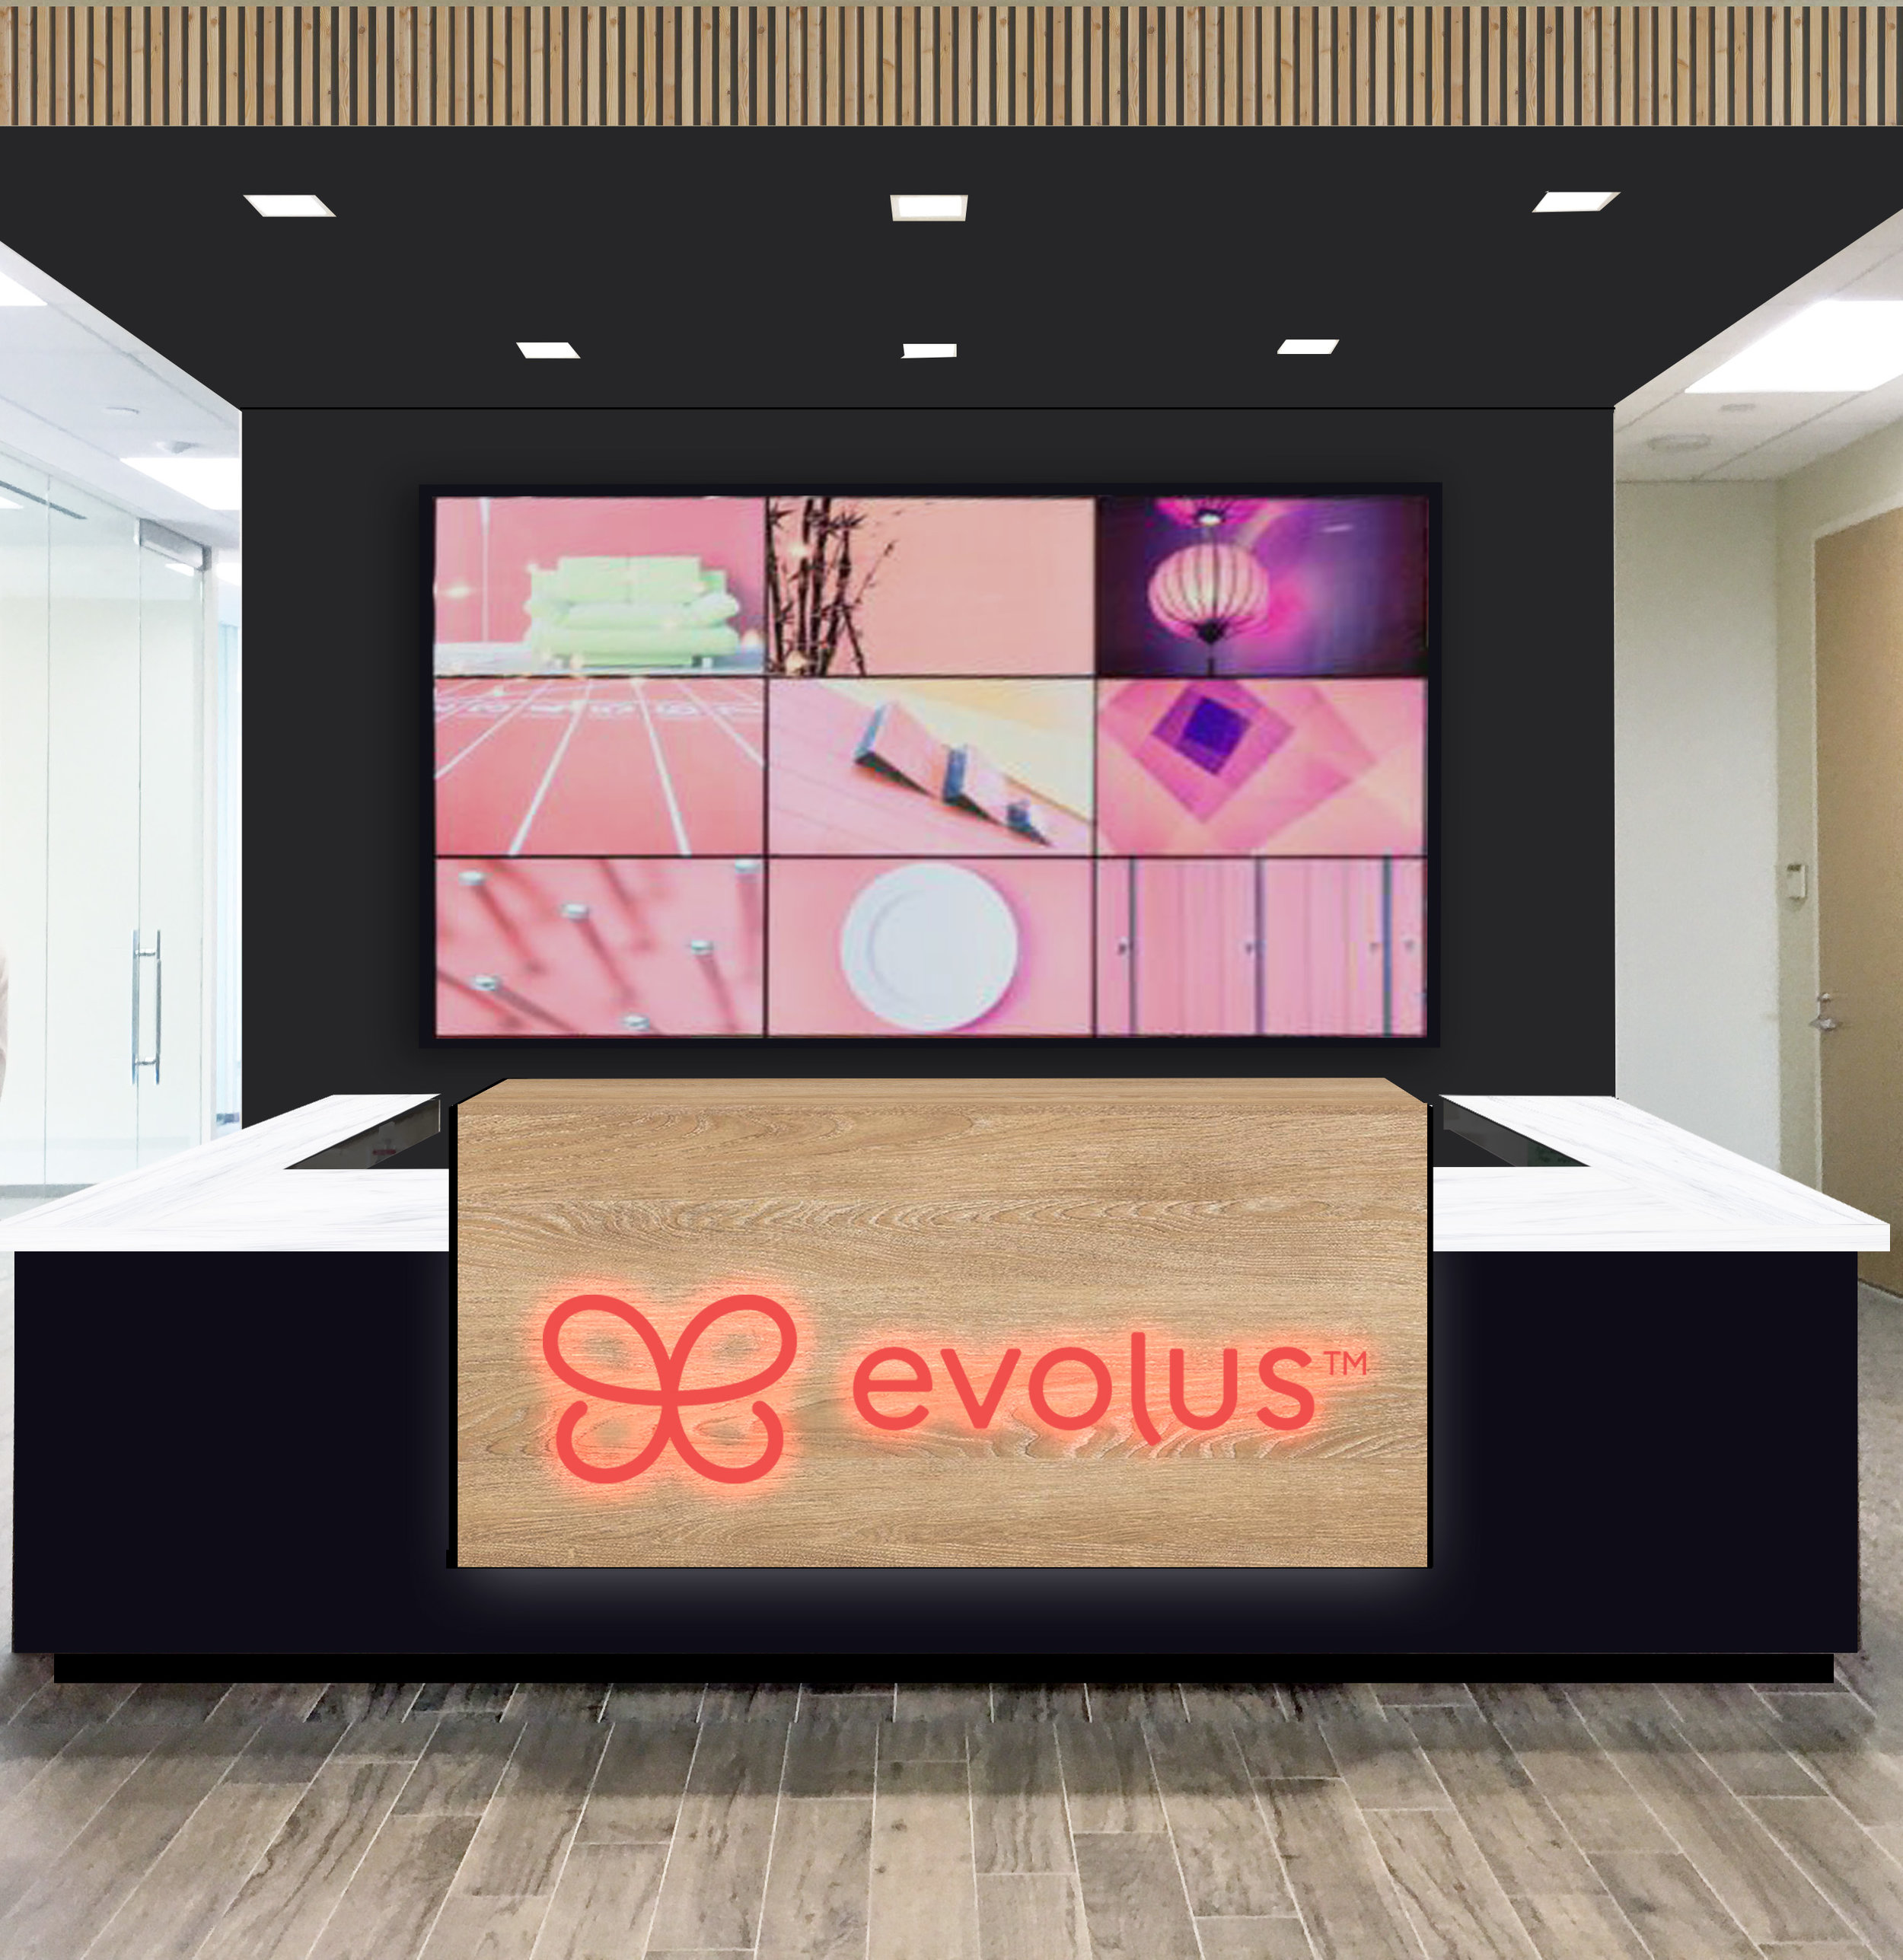 evolus reception desk 1.jpg